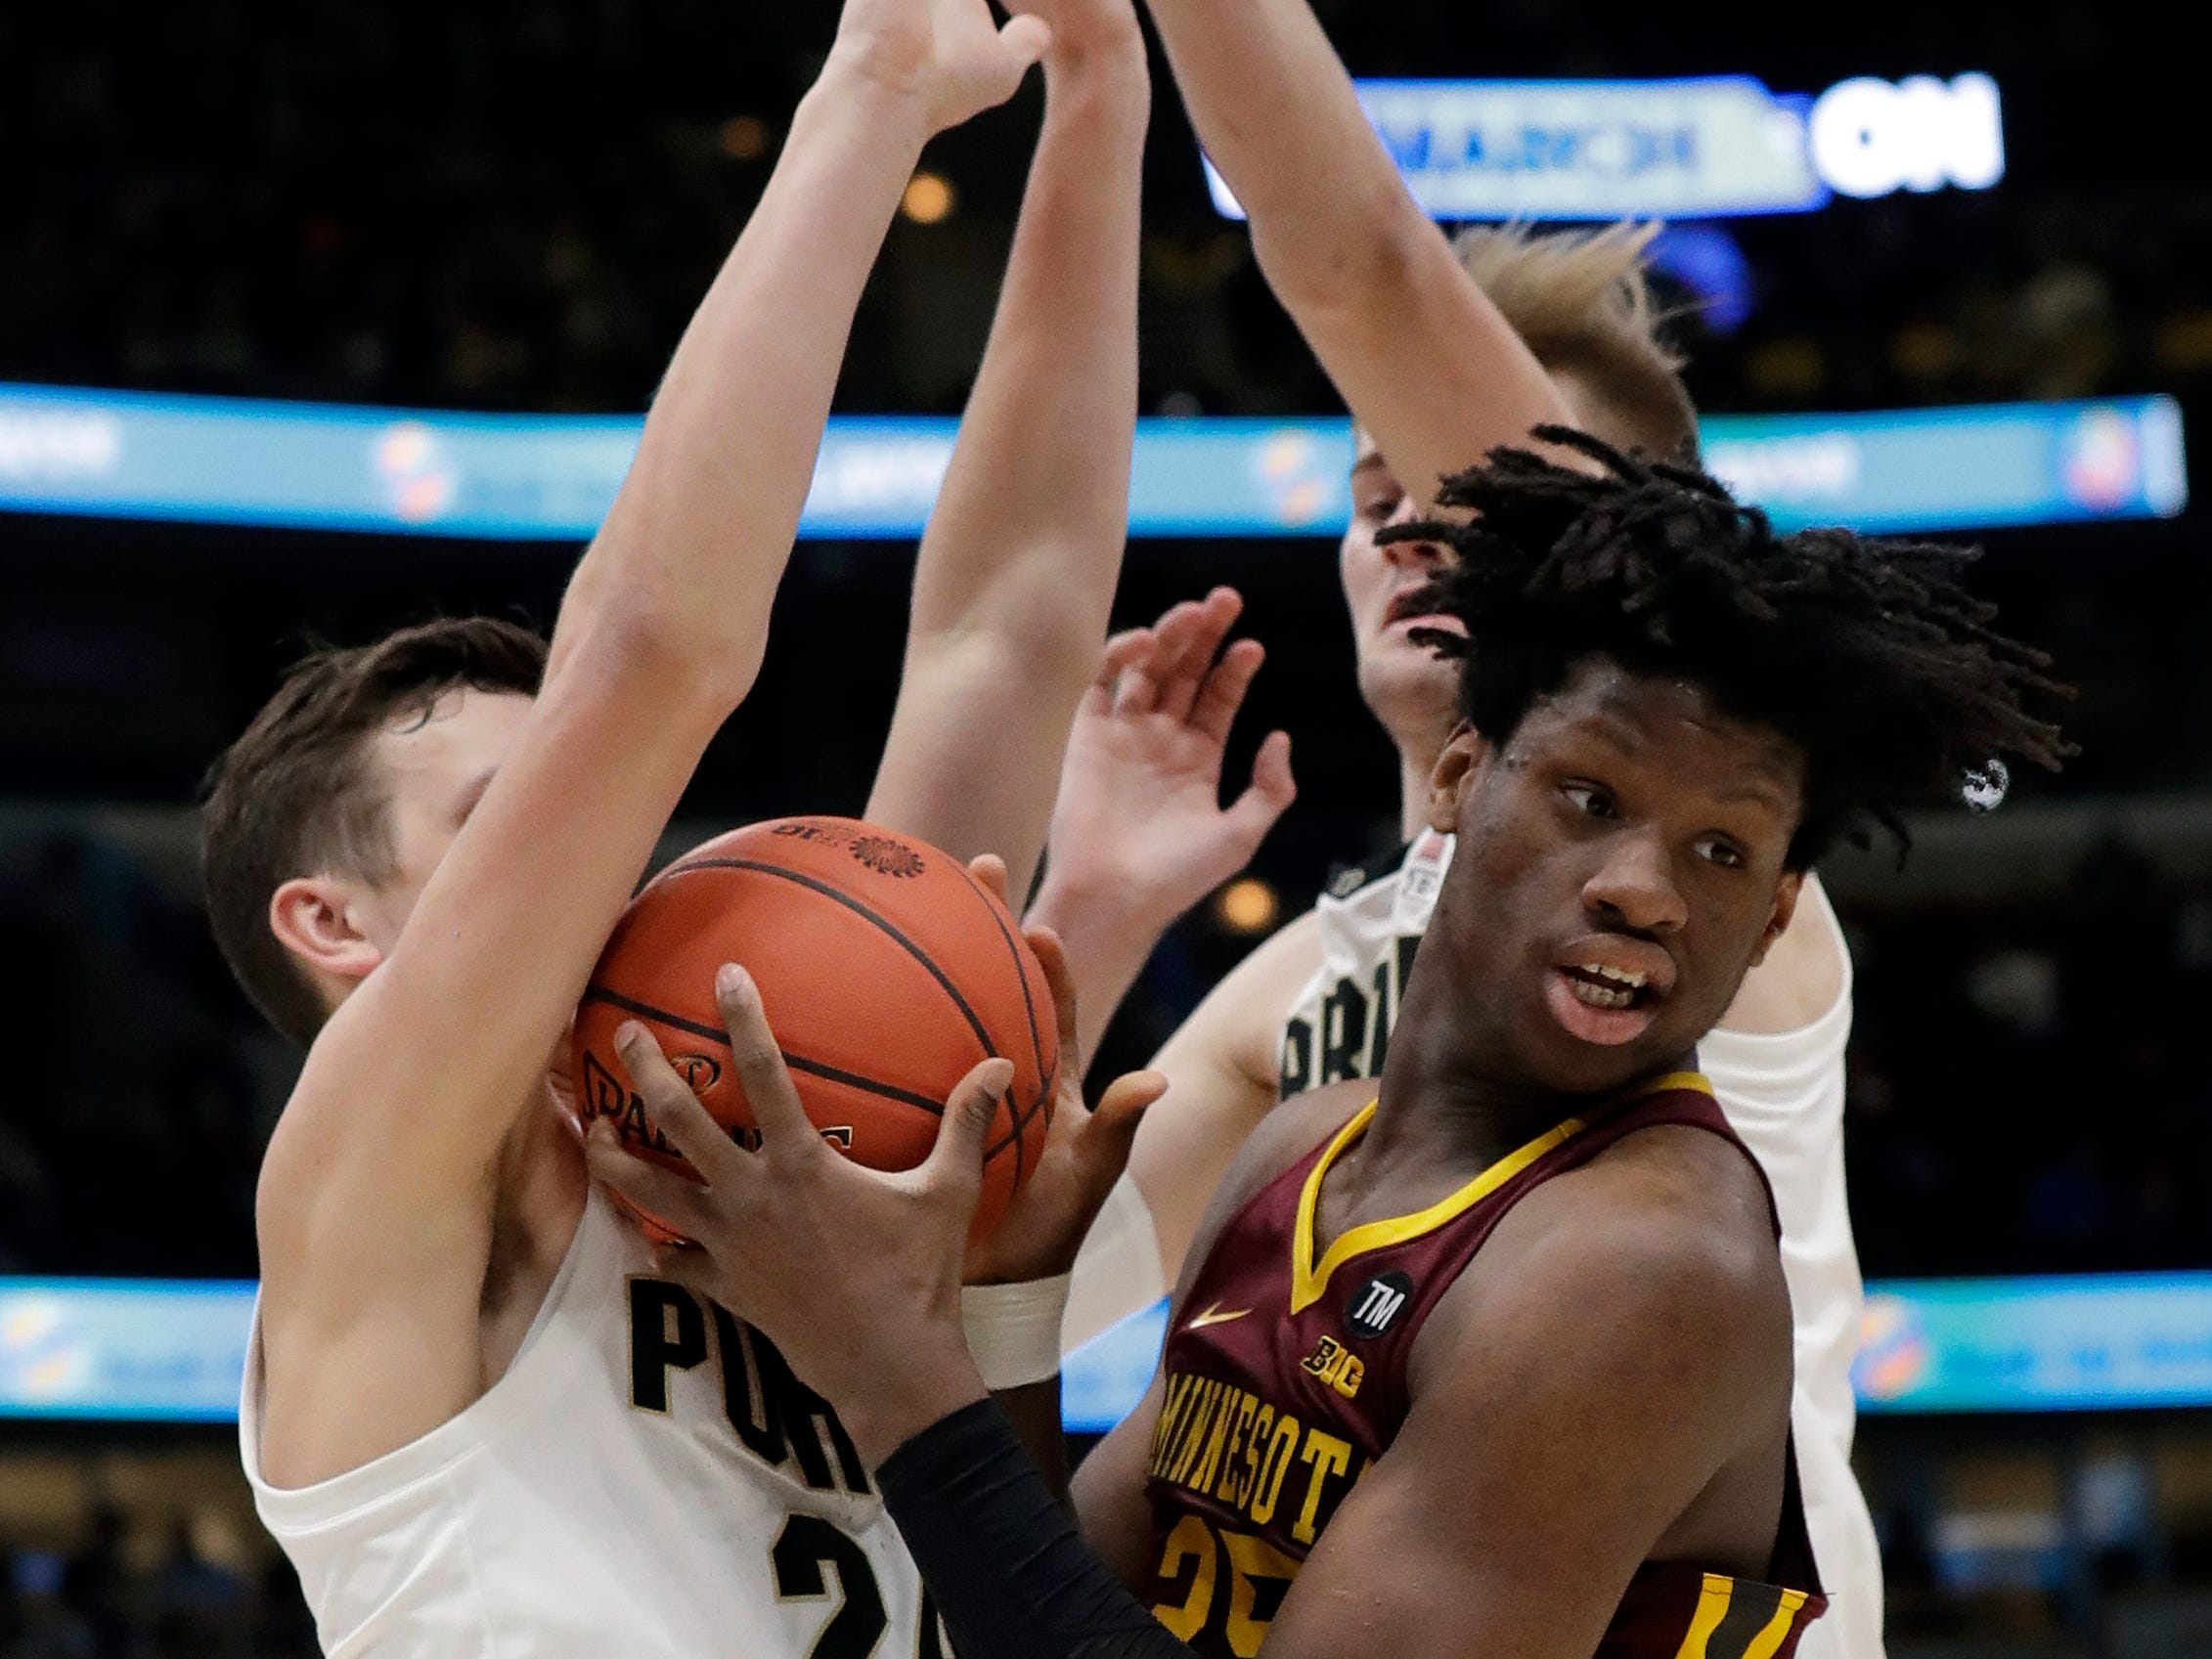 Minnesota's Daniel Oturu (25) battles for the possession of the ball against Purdue's Grady Eifert (24) and Matt Haarms during the first half of an NCAA college basketball game in the quarterfinals of the Big Ten Conference tournament, Friday, March 15, 2019, in Chicago. (AP Photo/Nam Y. Huh)